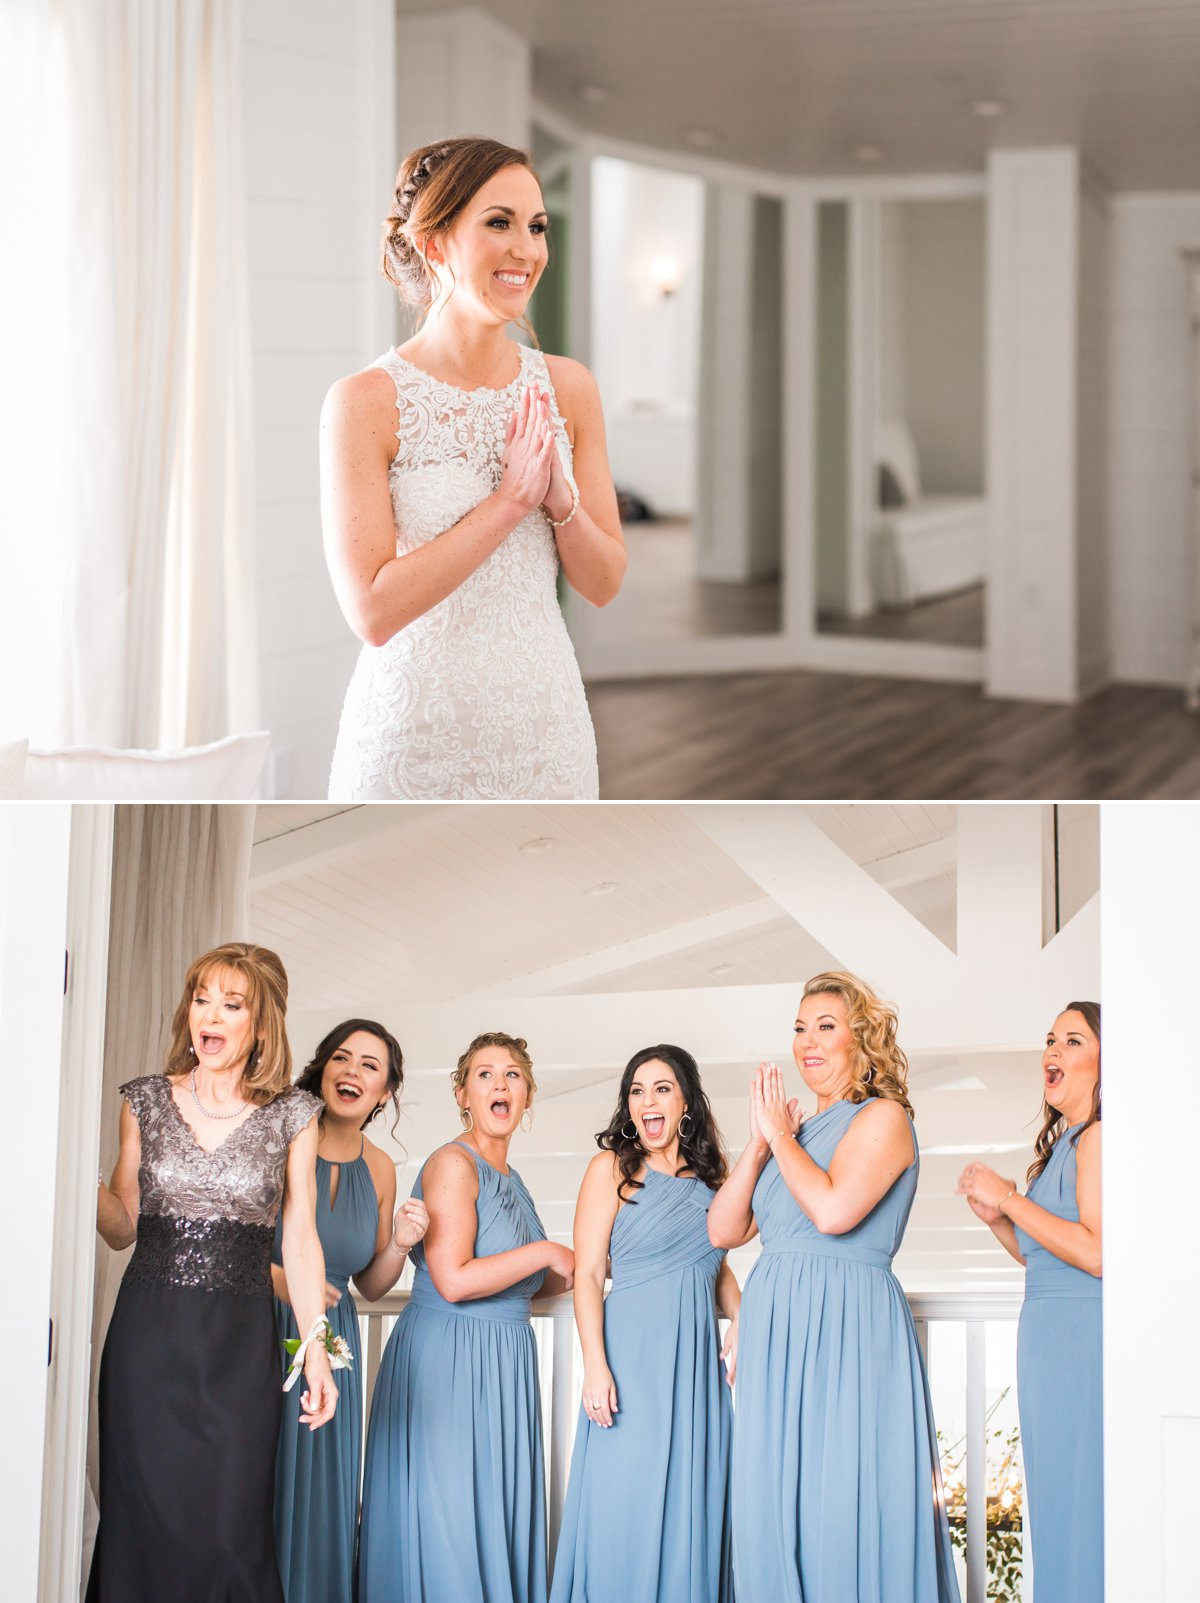 Bridesmaid reveal at The Farmhouse Wedding Venue